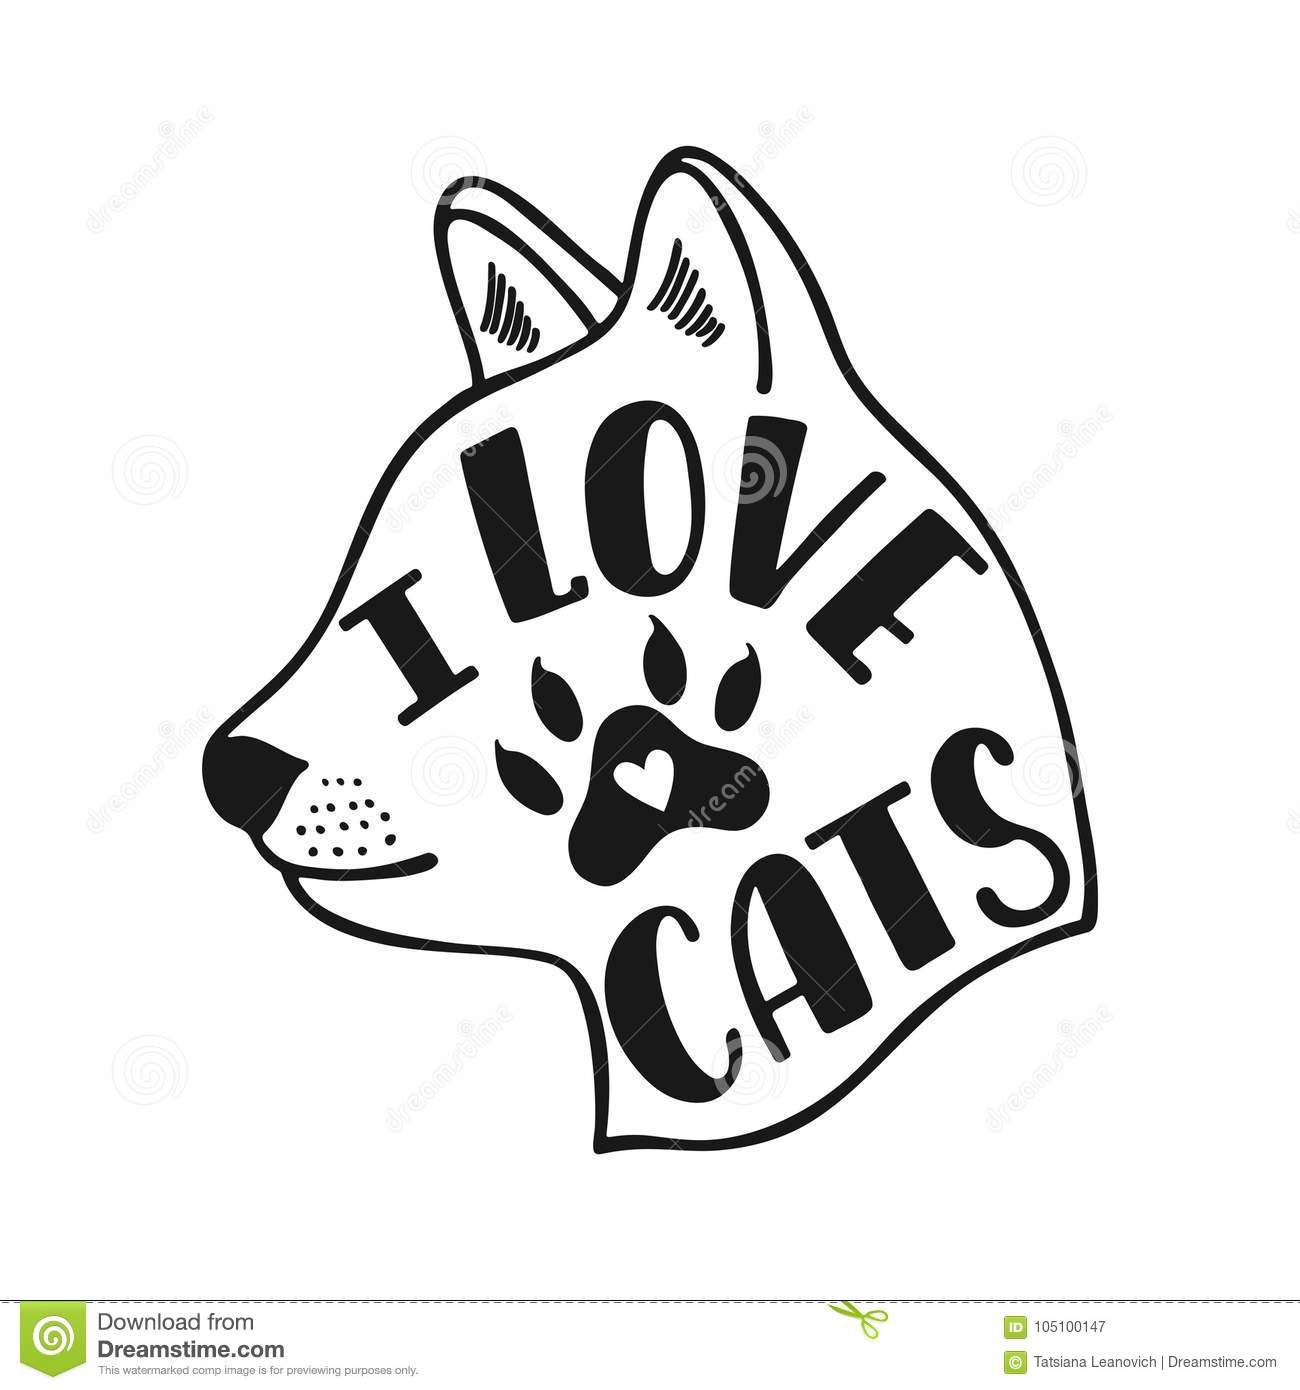 I Love Cats Handwritten Inspirational Quote About Cat Typography Lettering Design Black And White Vector Illustration Eps 10 Stock Illustration Illustration Of Illustration Doodle 105100147